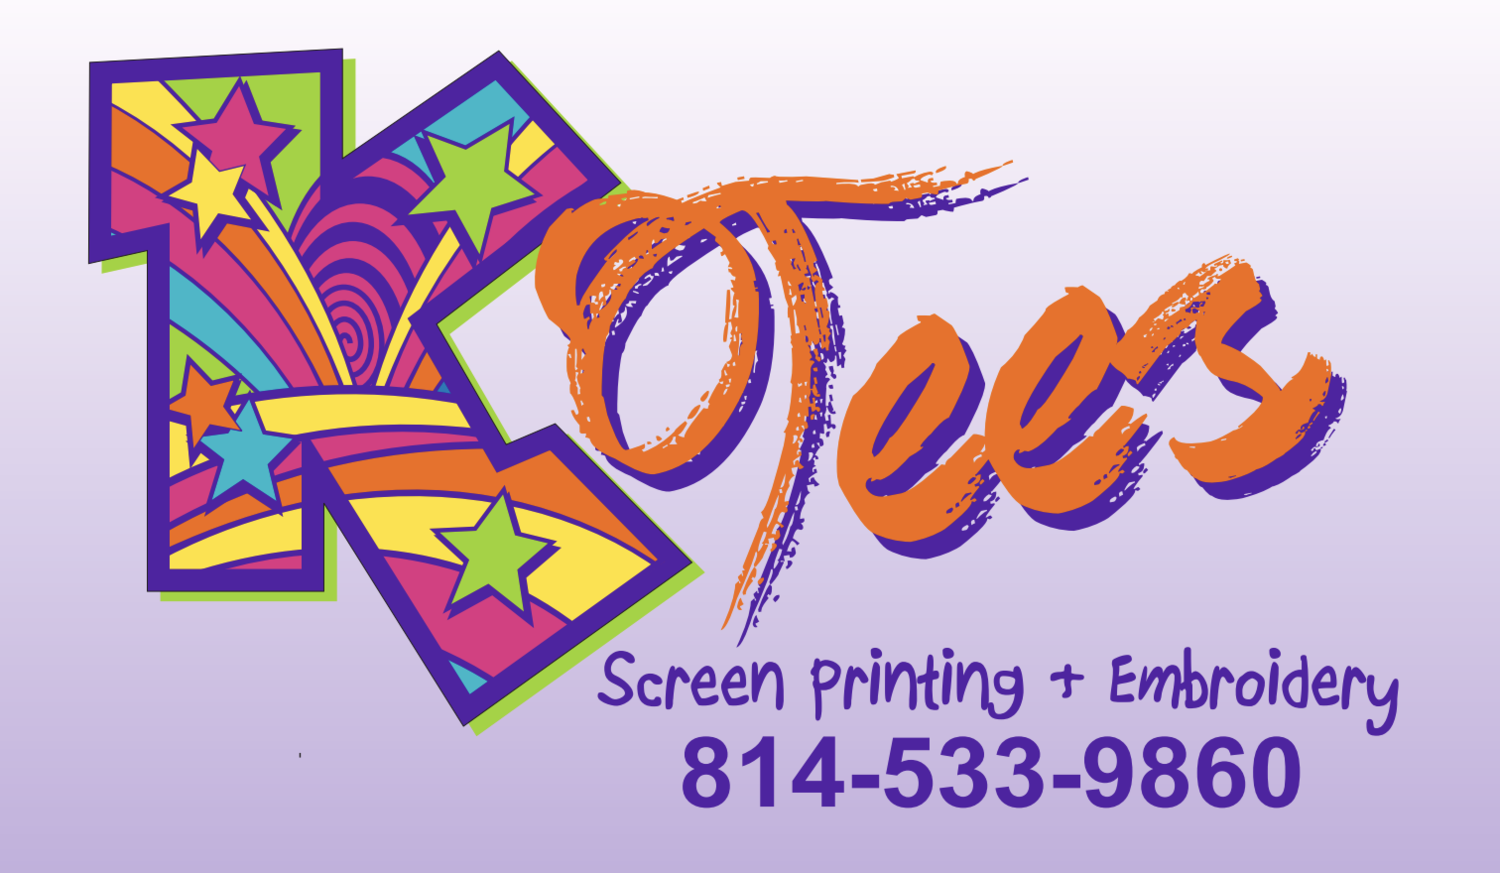 K Tees Screen Printing and Embroidery